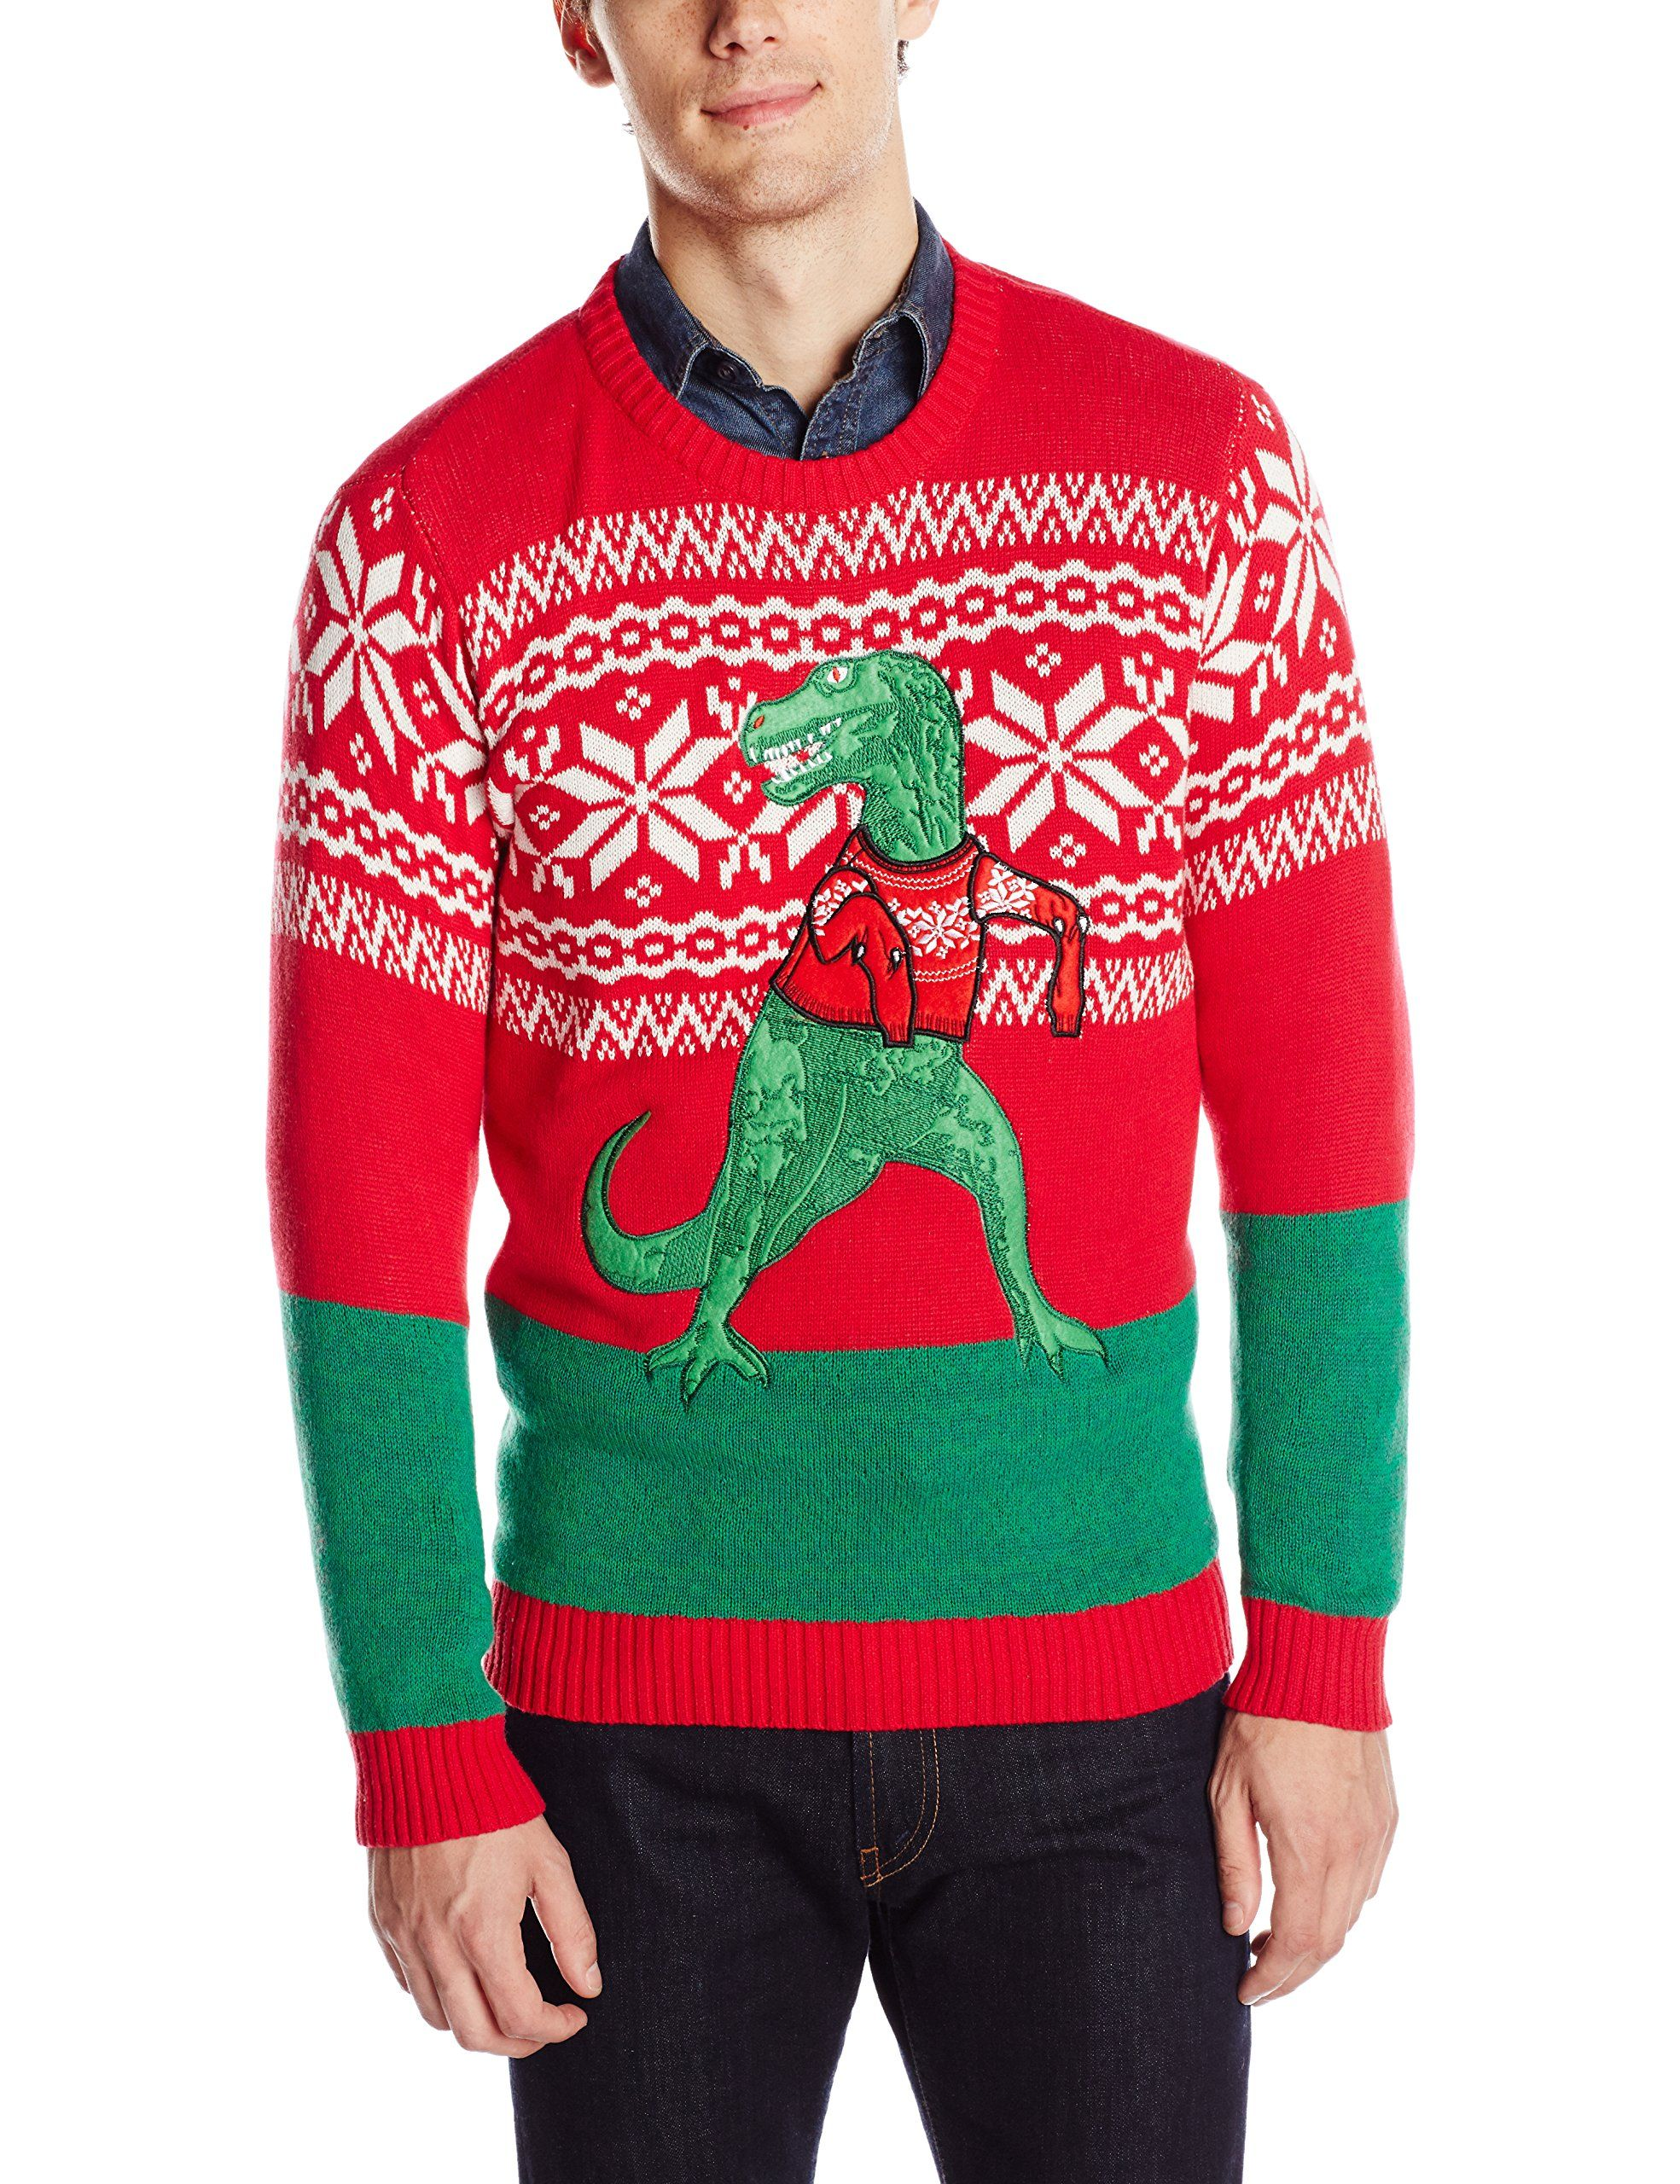 Blizzard Bay Mens Trex Hates Sweater Ugly Christmas Sweater Red